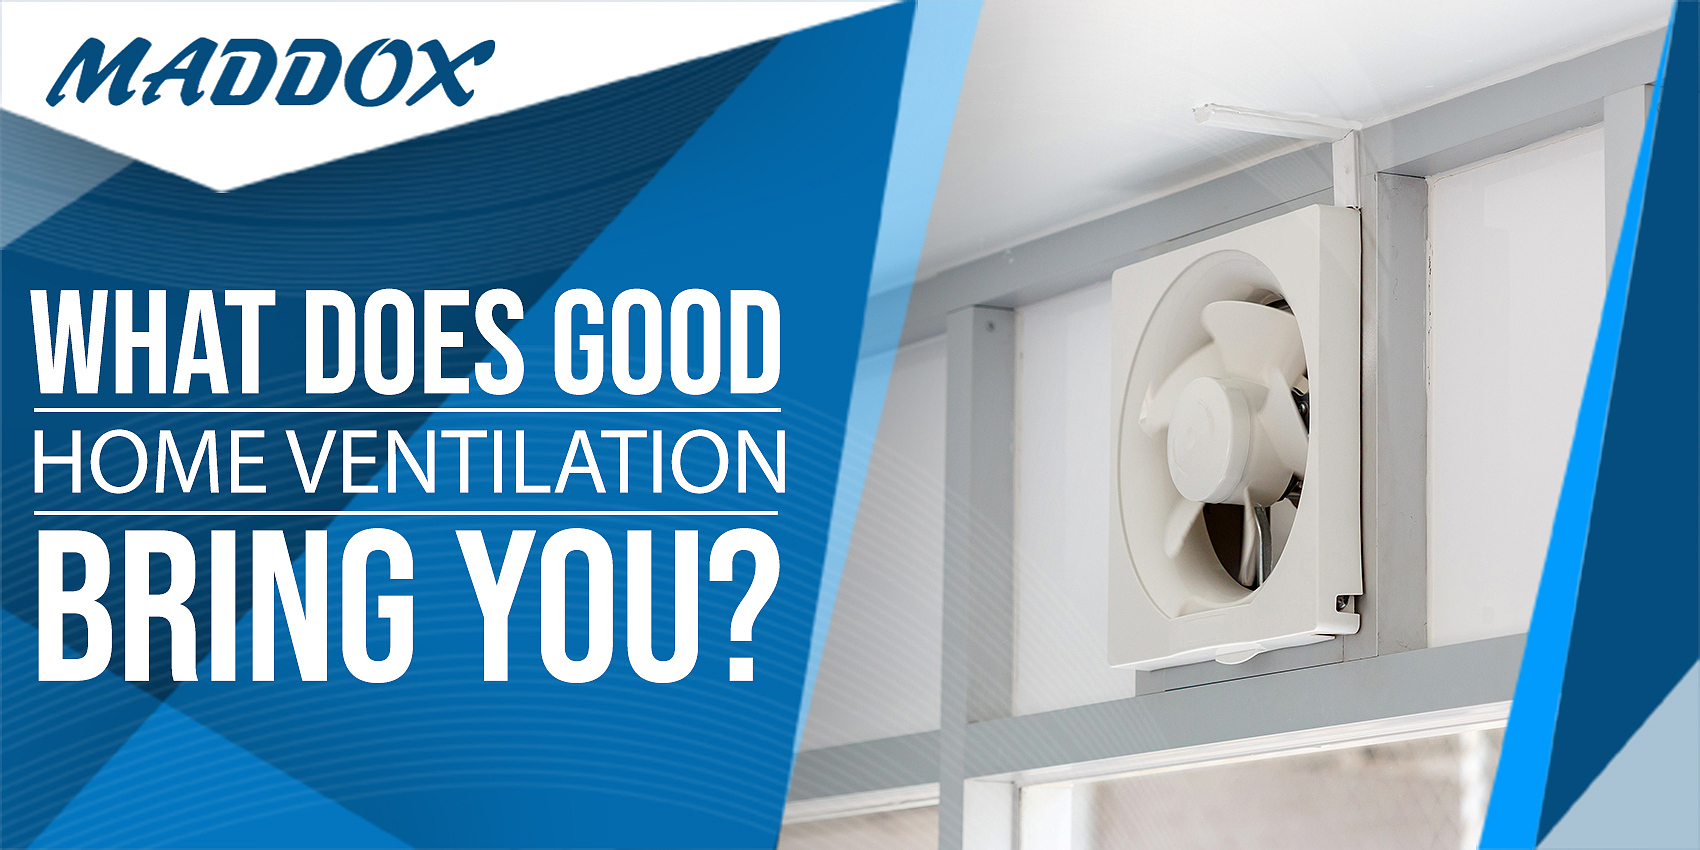 What Does Good Home Ventilation Bring You?